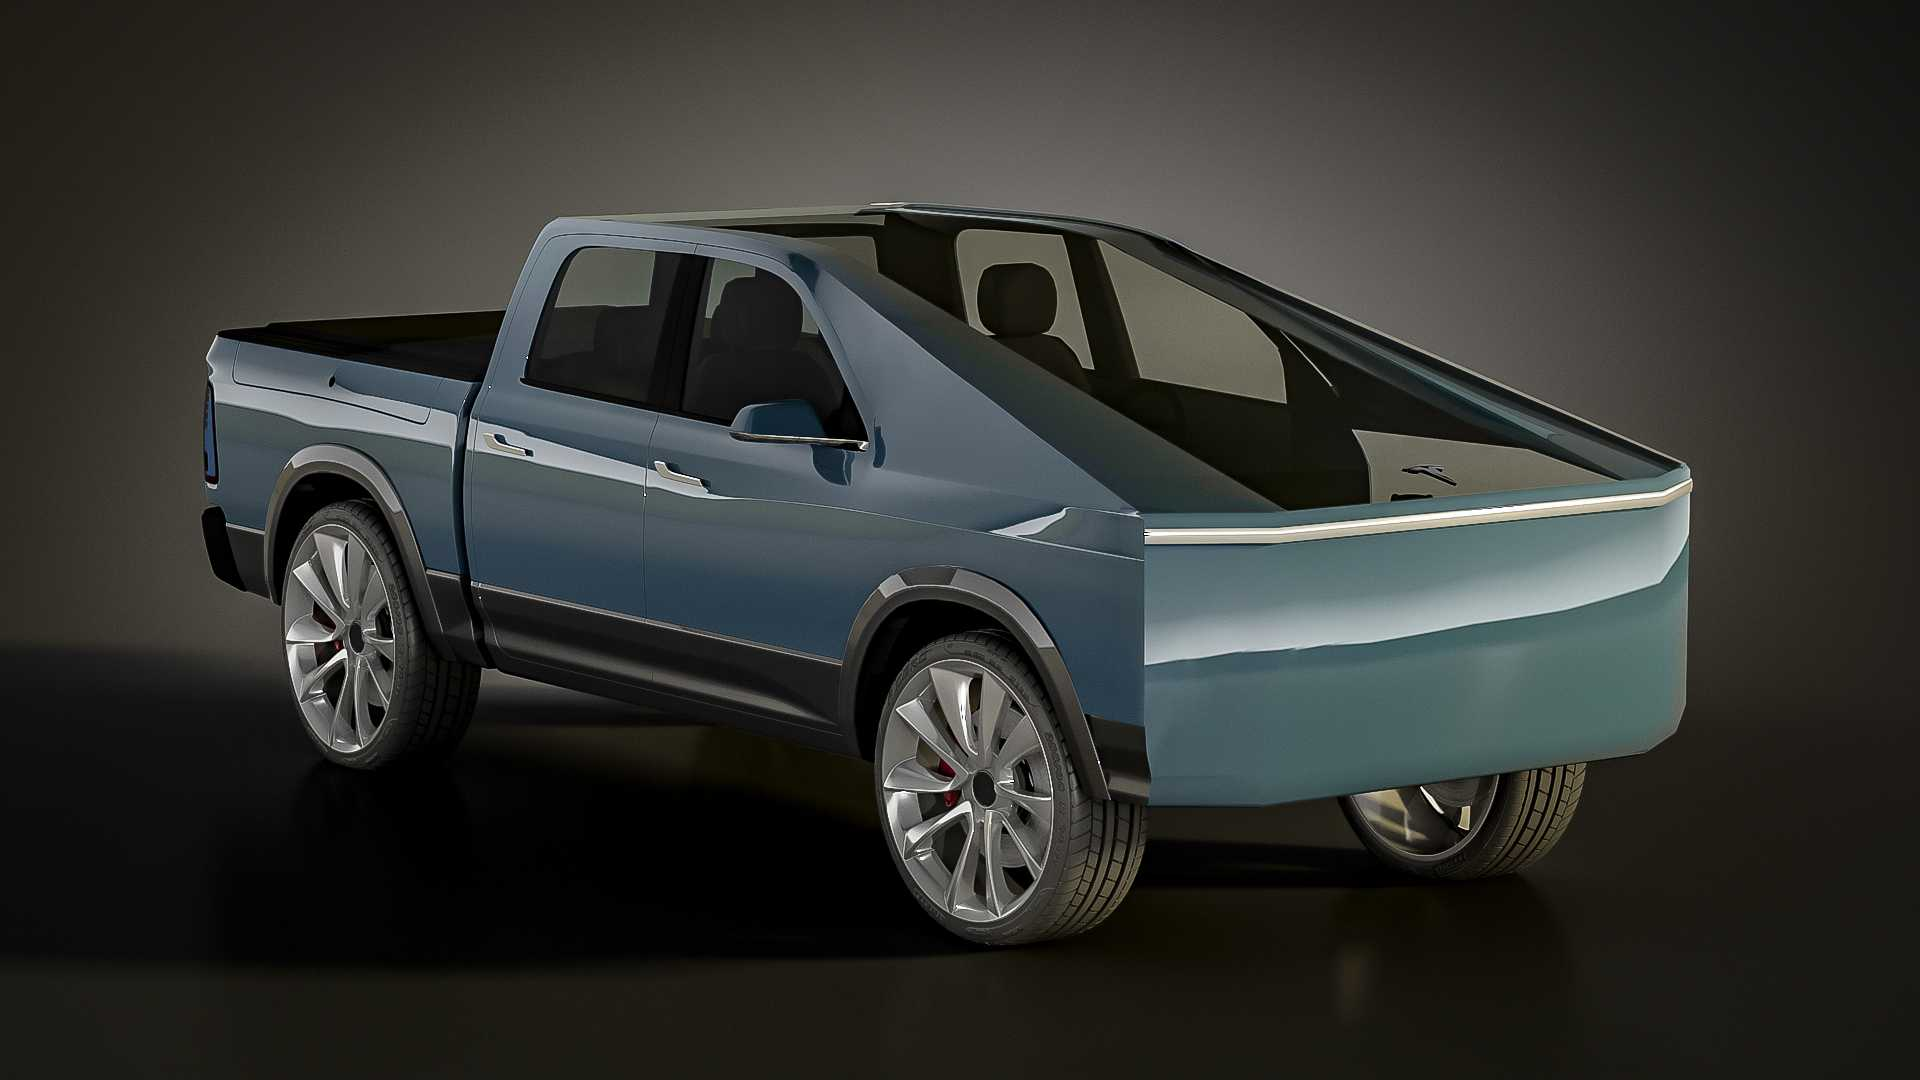 Electric Pickup Truck News: Tesla Truck Reveal, Controversial Render